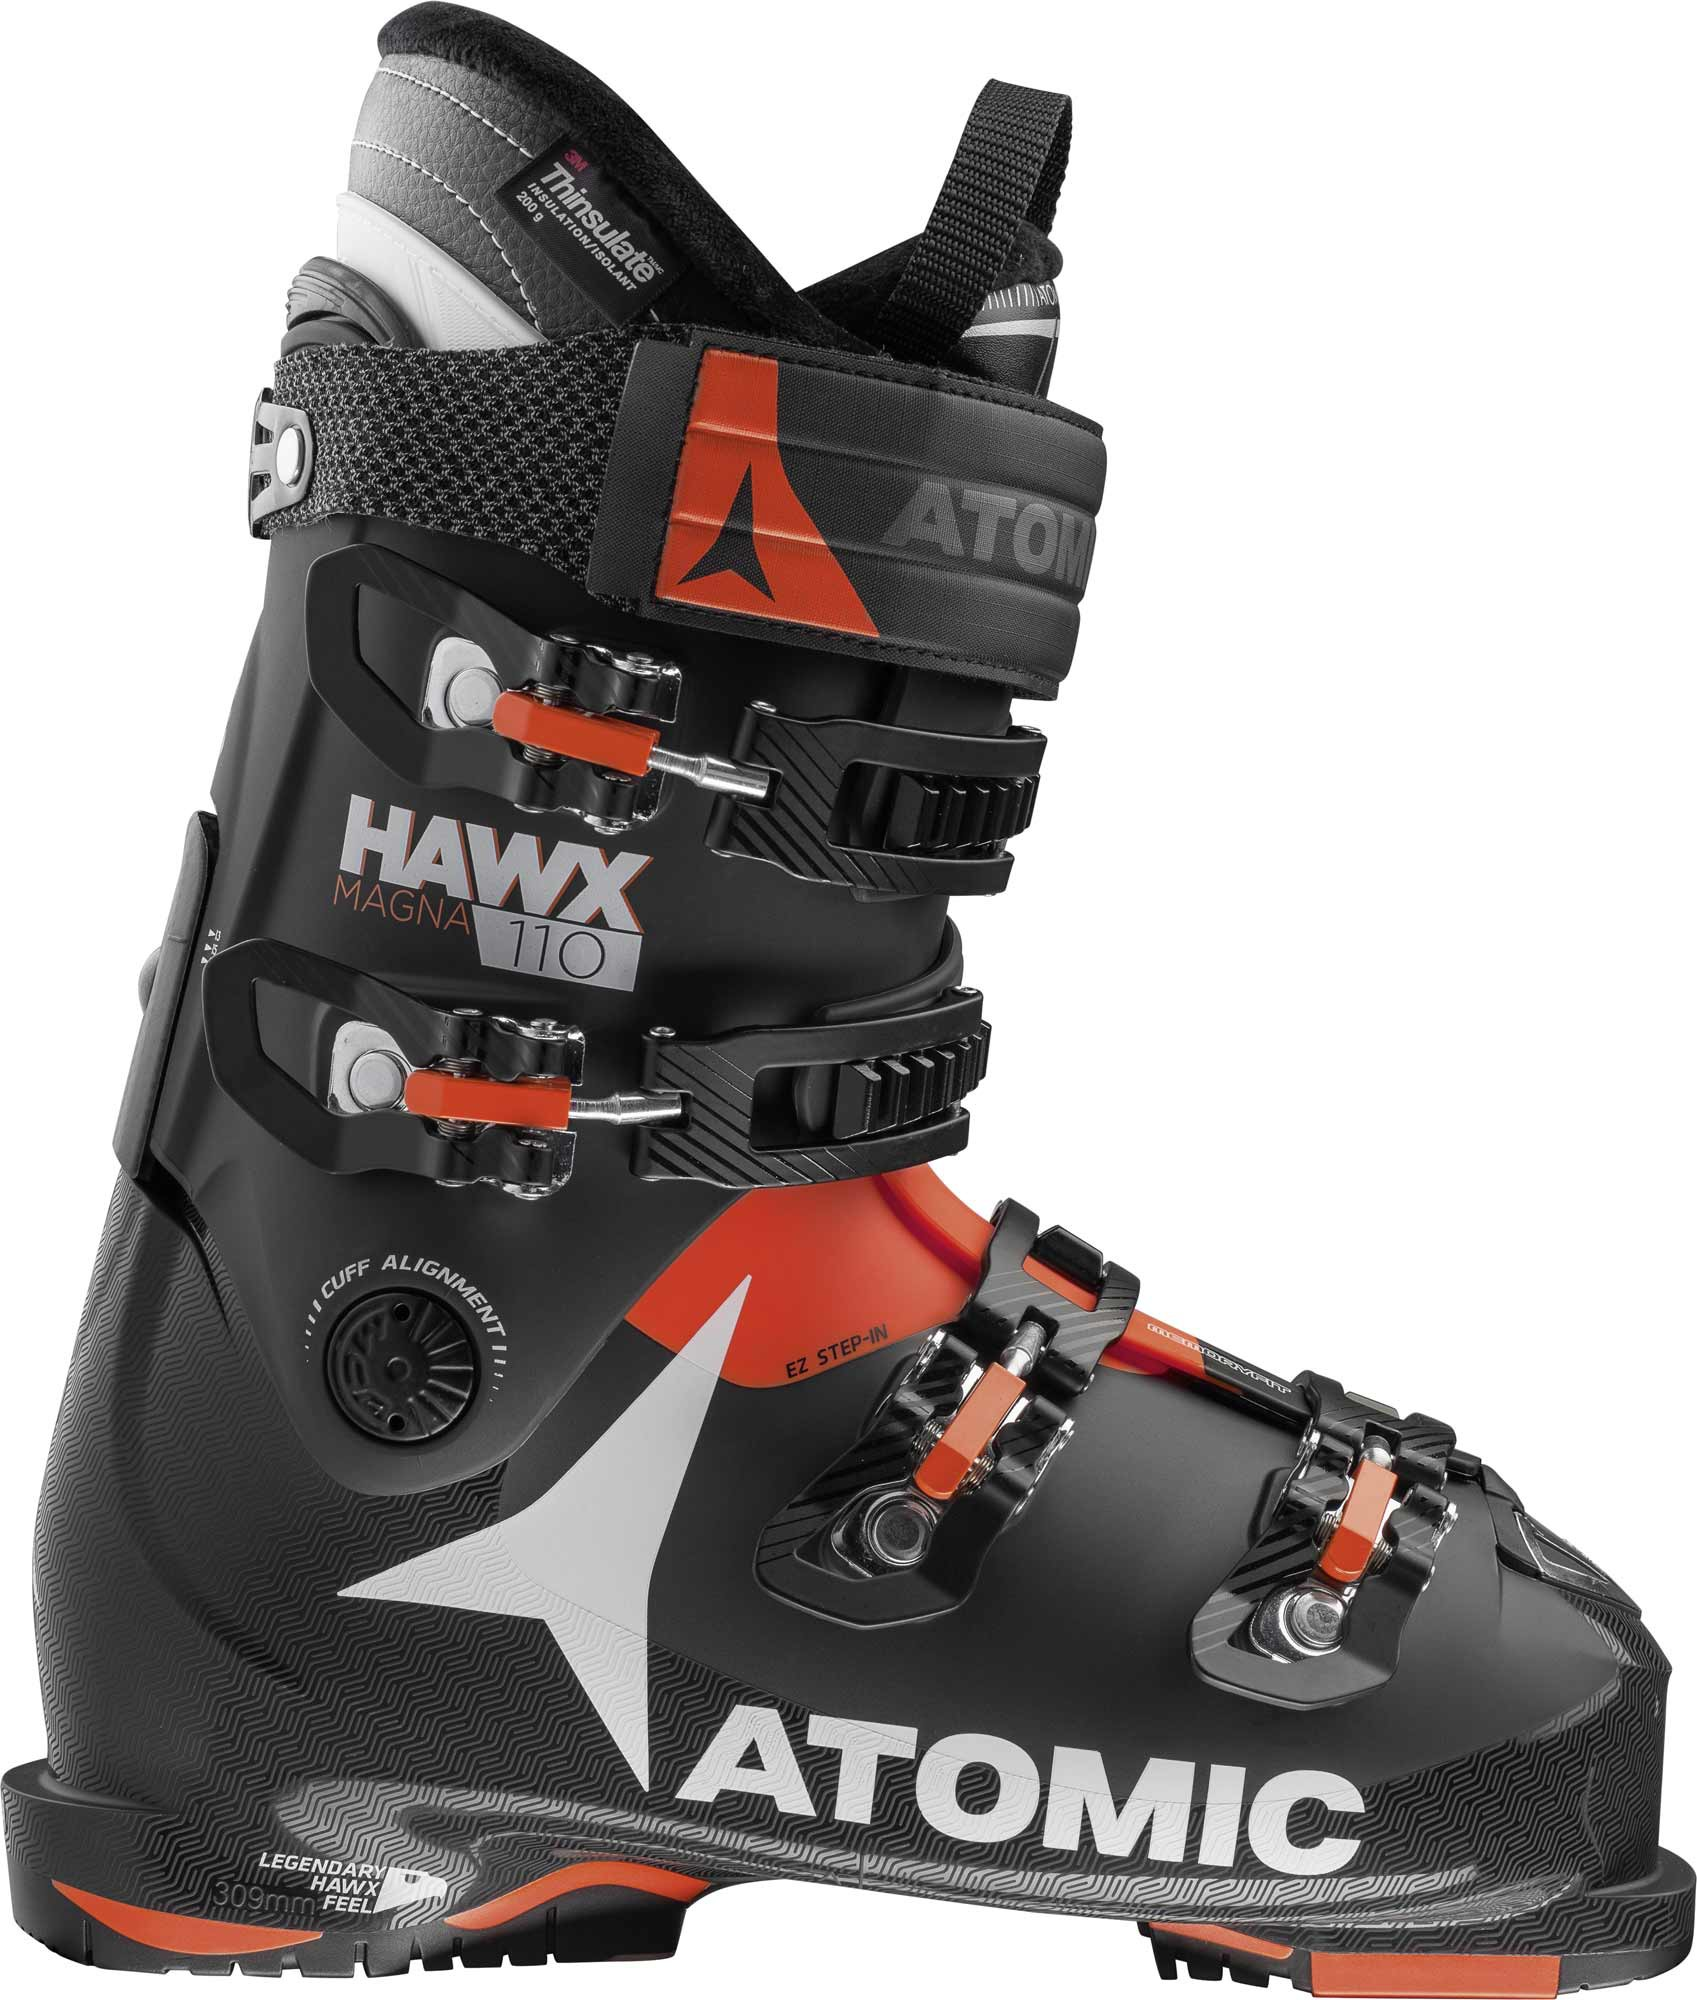 Atomic Hawx Magna 110 - 1 Paar All Mountain Skischuhe